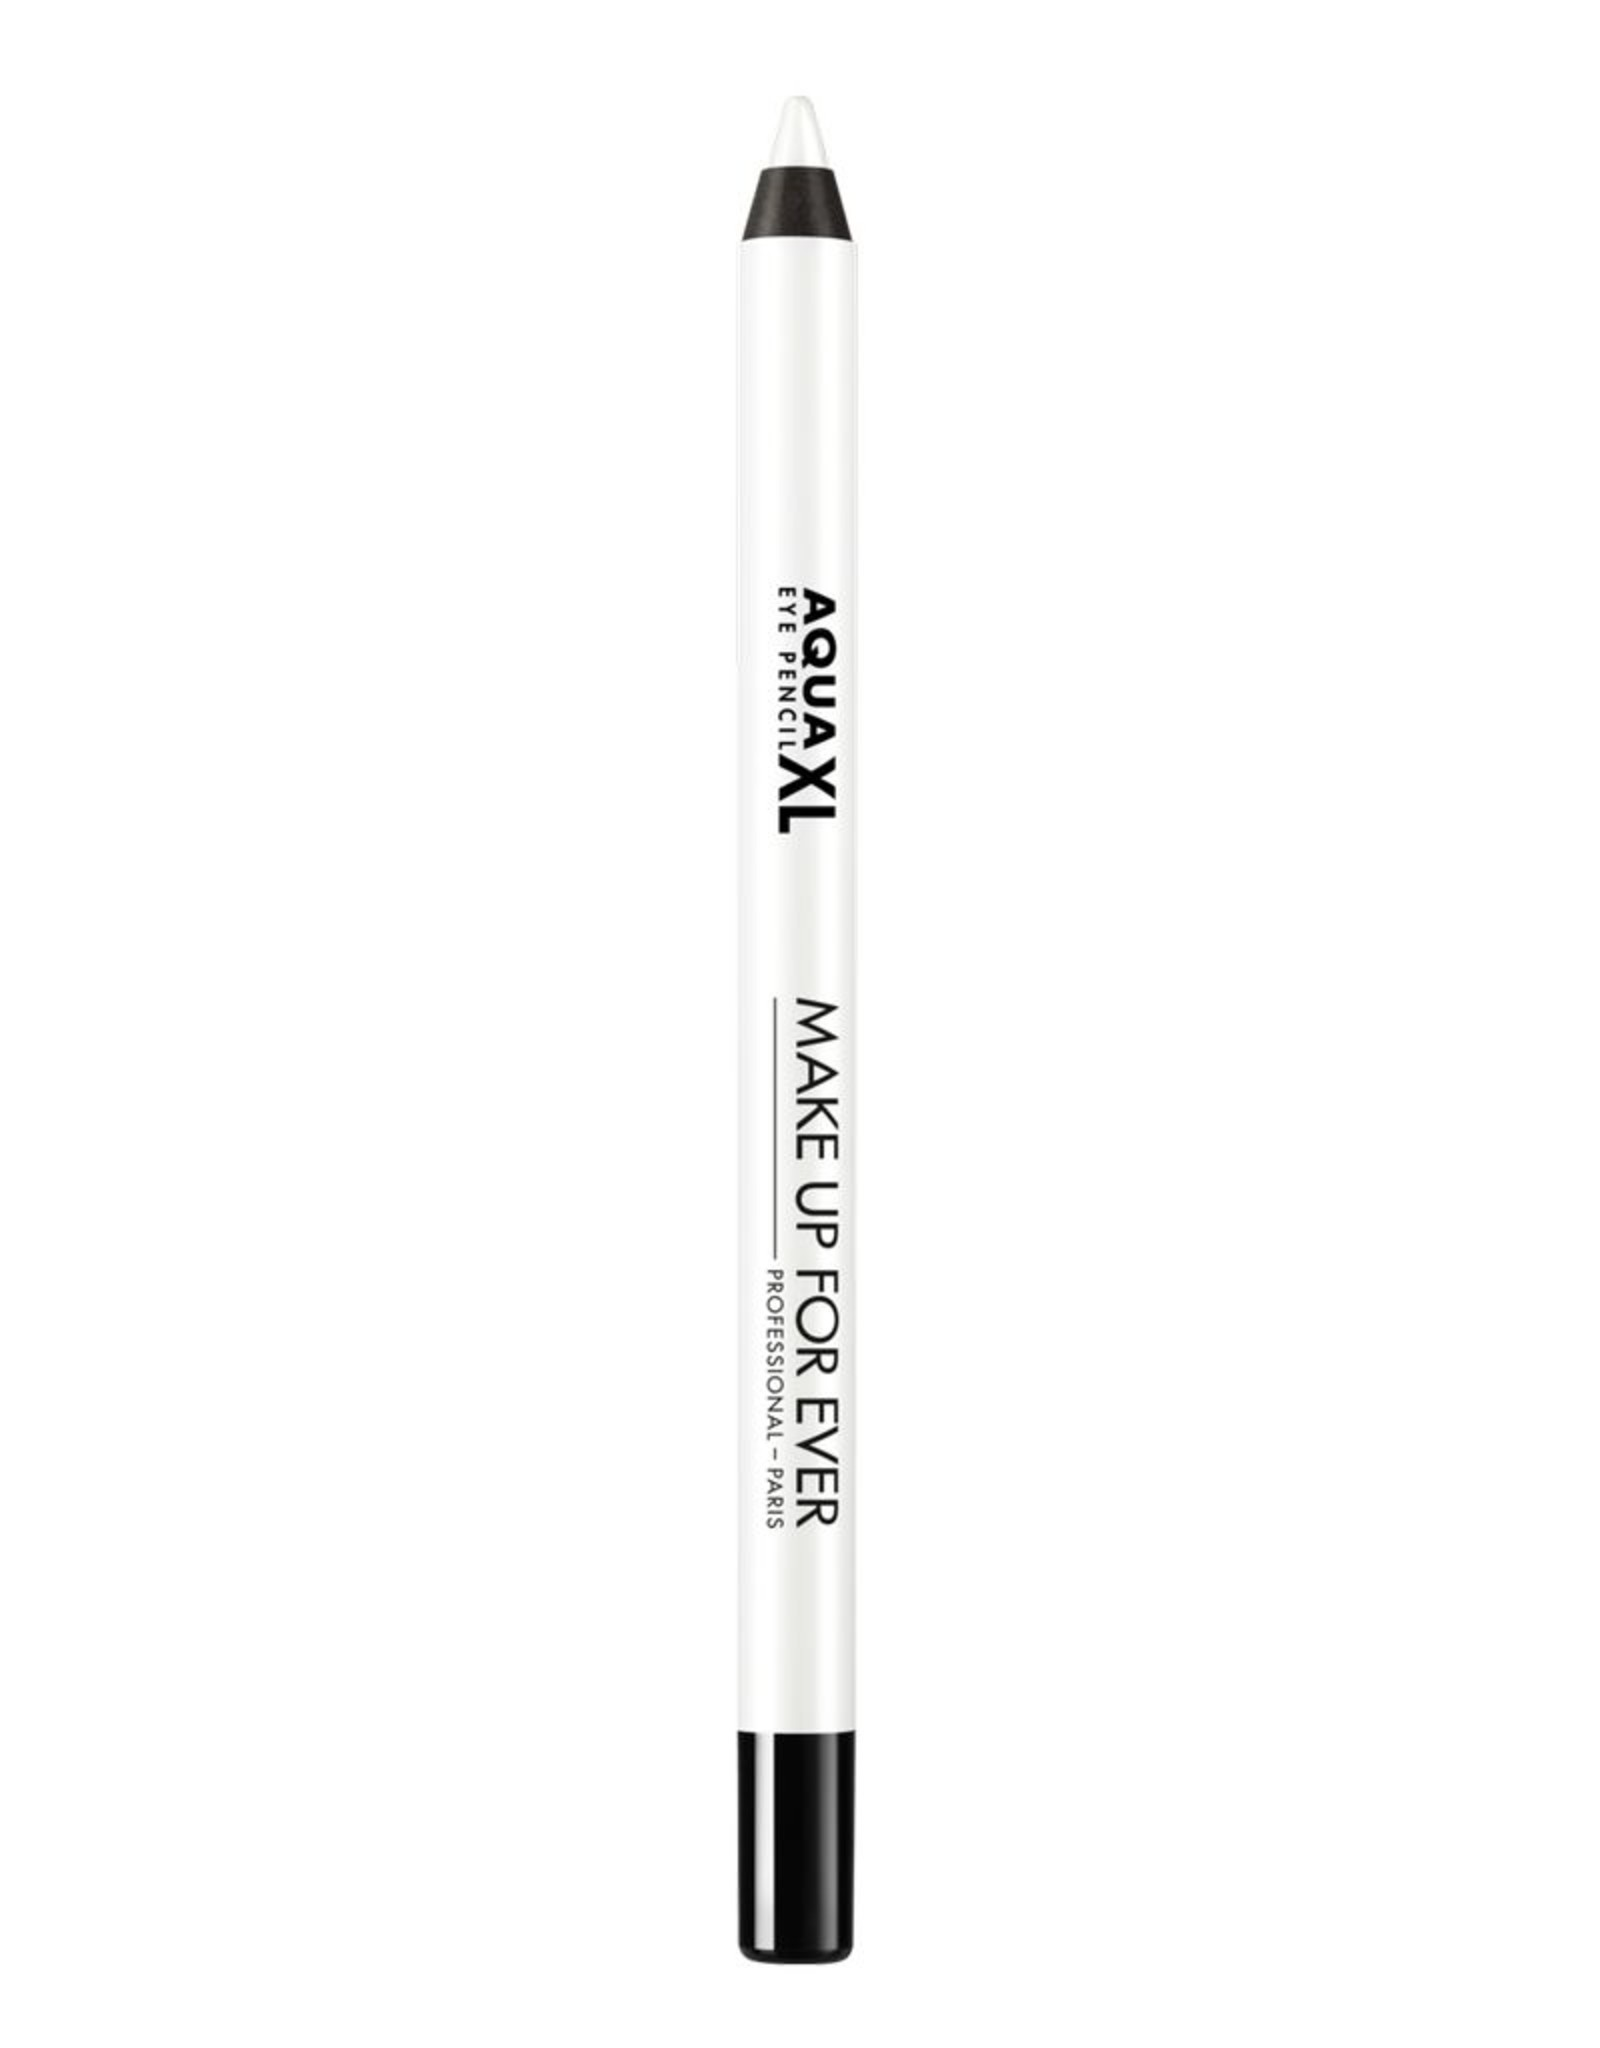 MUFE AQUA XL EYE PENCIL 1,2G M-16